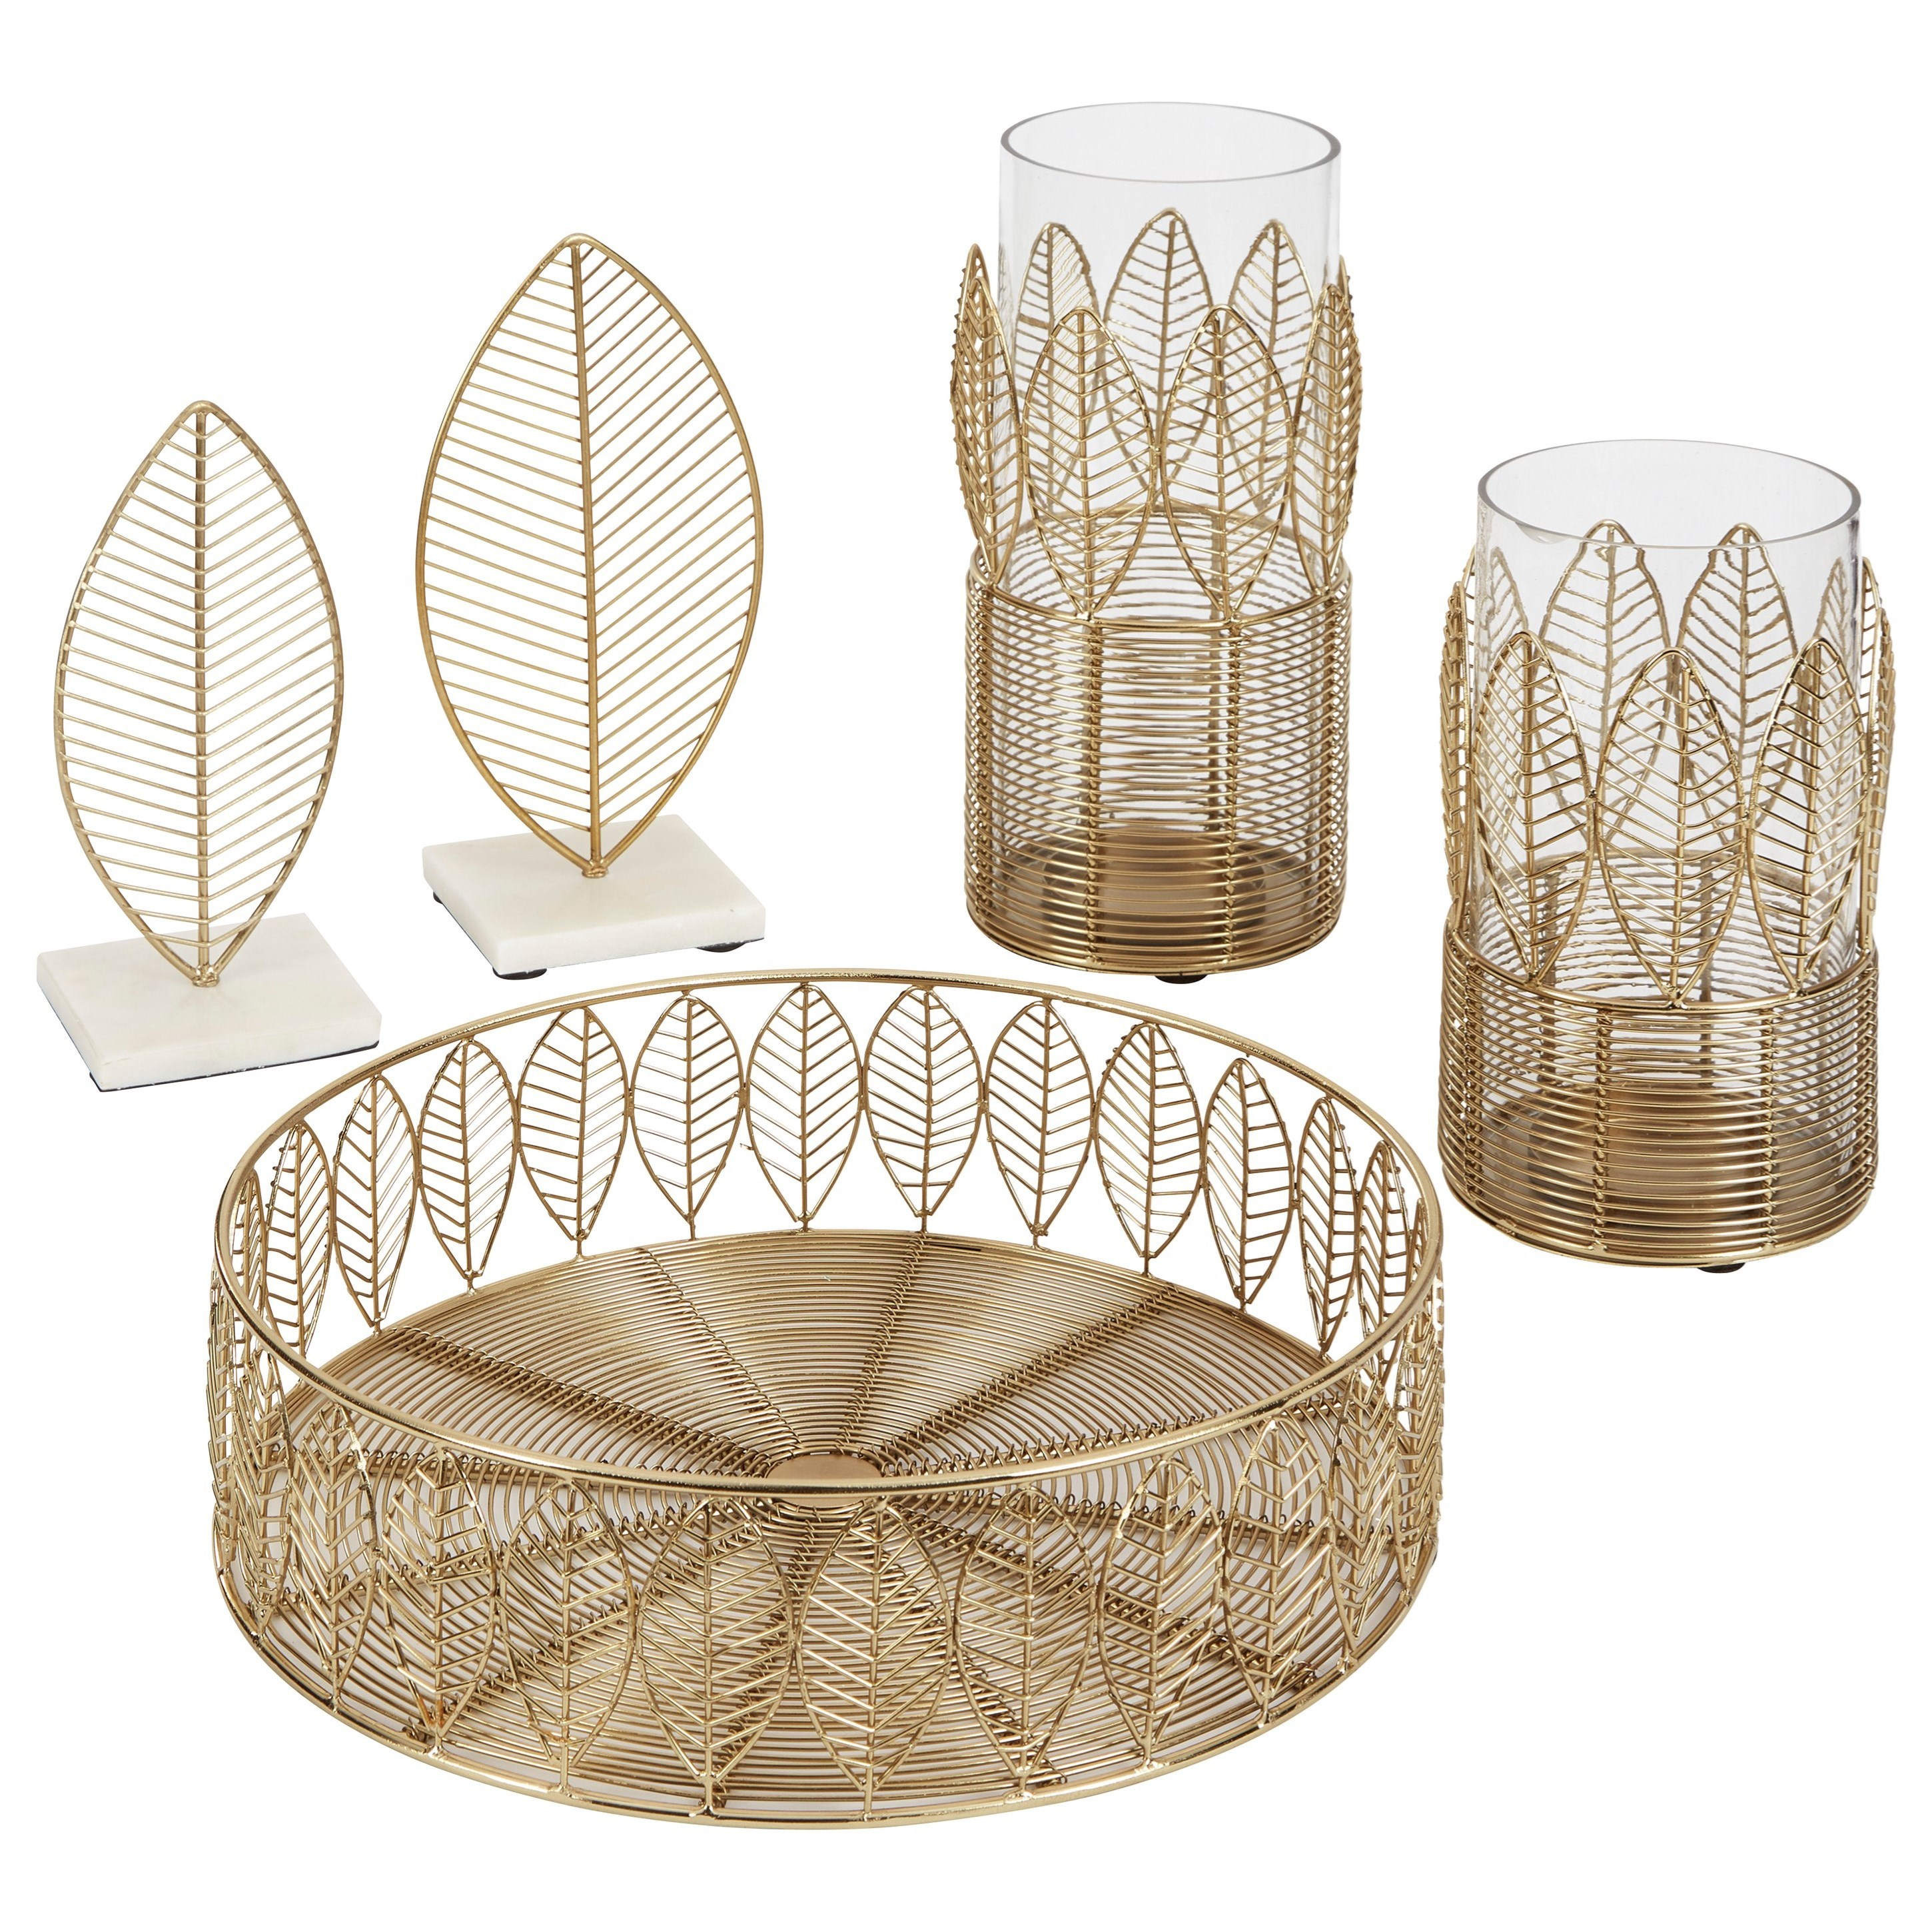 Accents Dimity Gold Finish Accessory Set by Signature Design by Ashley at Catalog Outlet